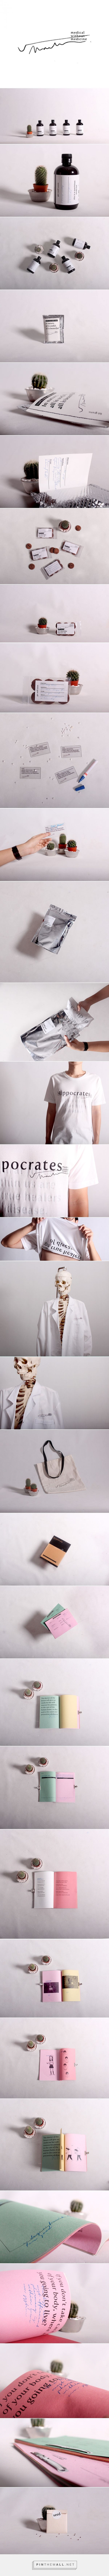 MWM - Medical Without Medicine on Behance - created via http://pinthemall.net